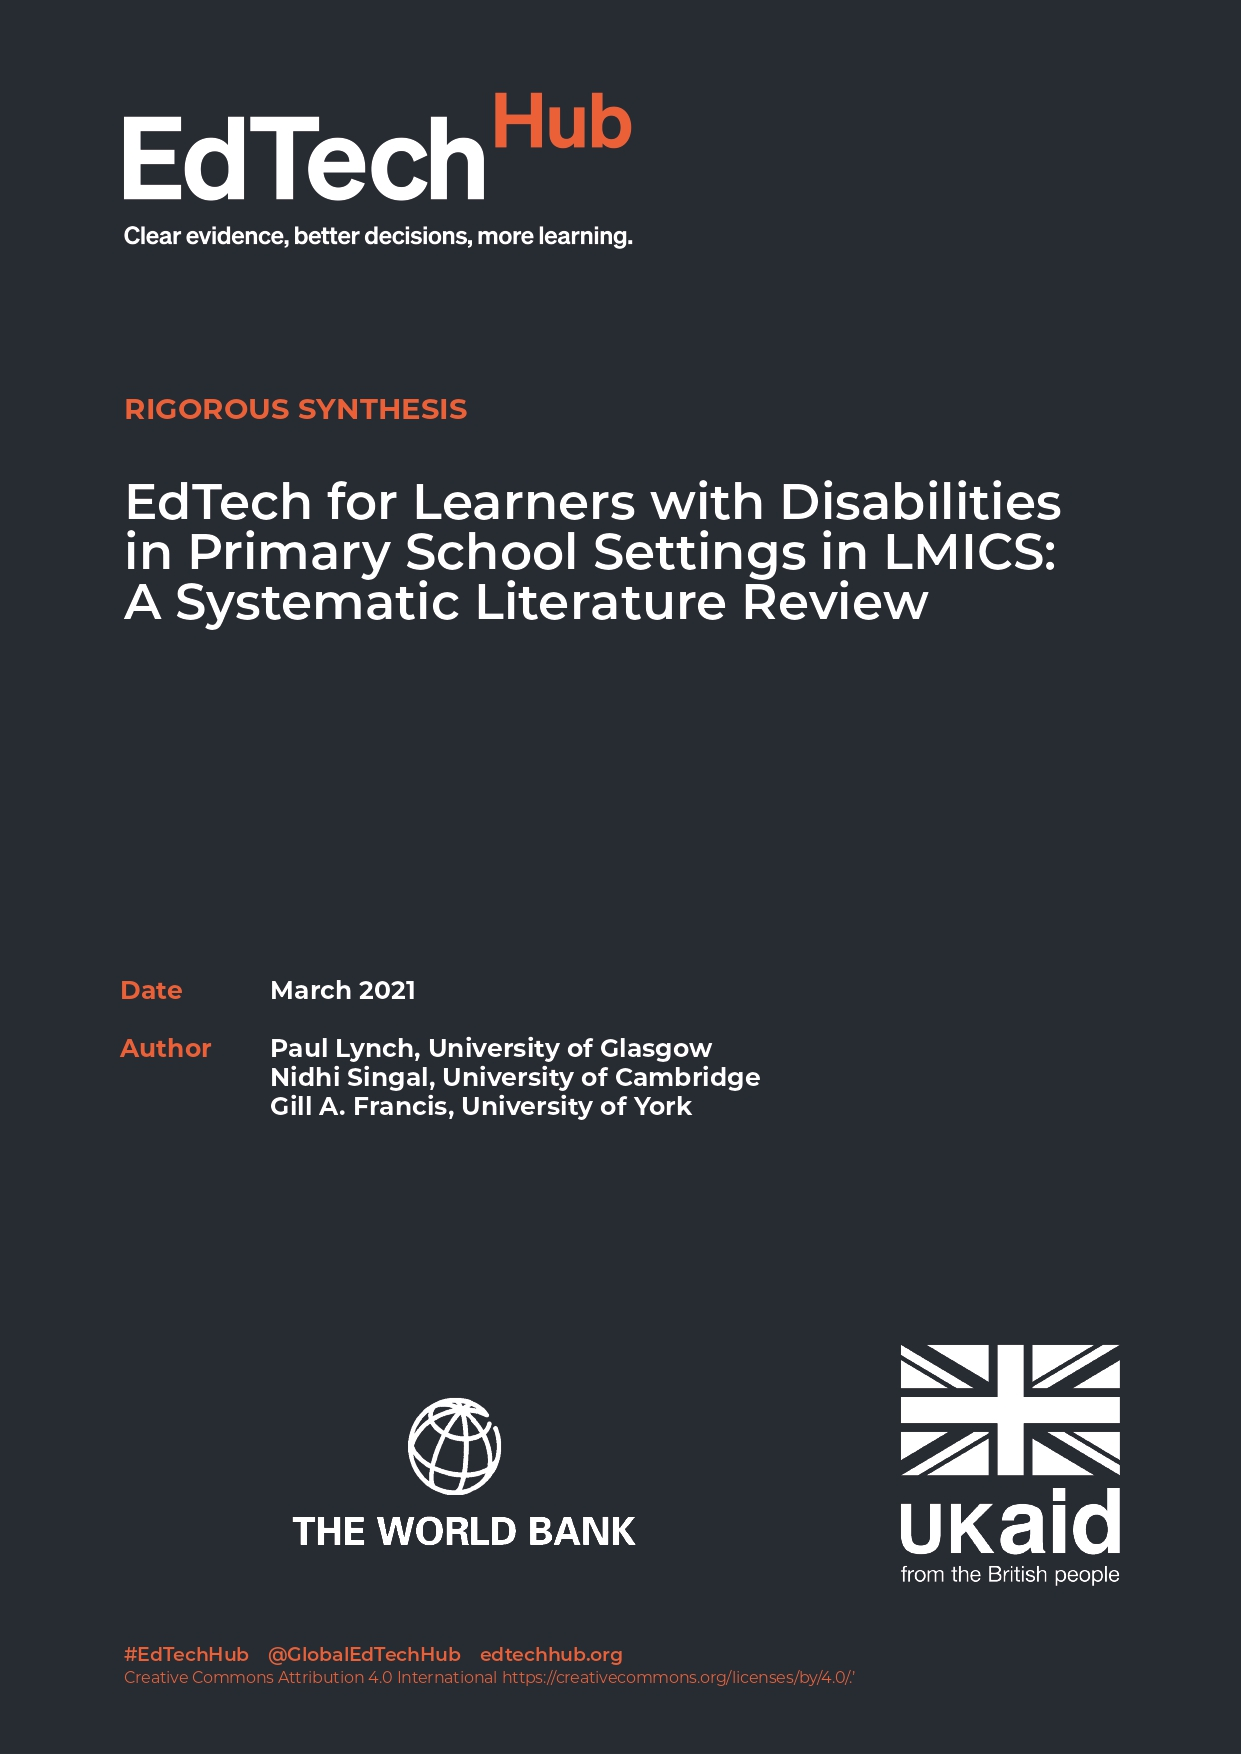 EdTech for Learners with Disabilities in Primary School Settings in LMICS: A Systematic Literature Review